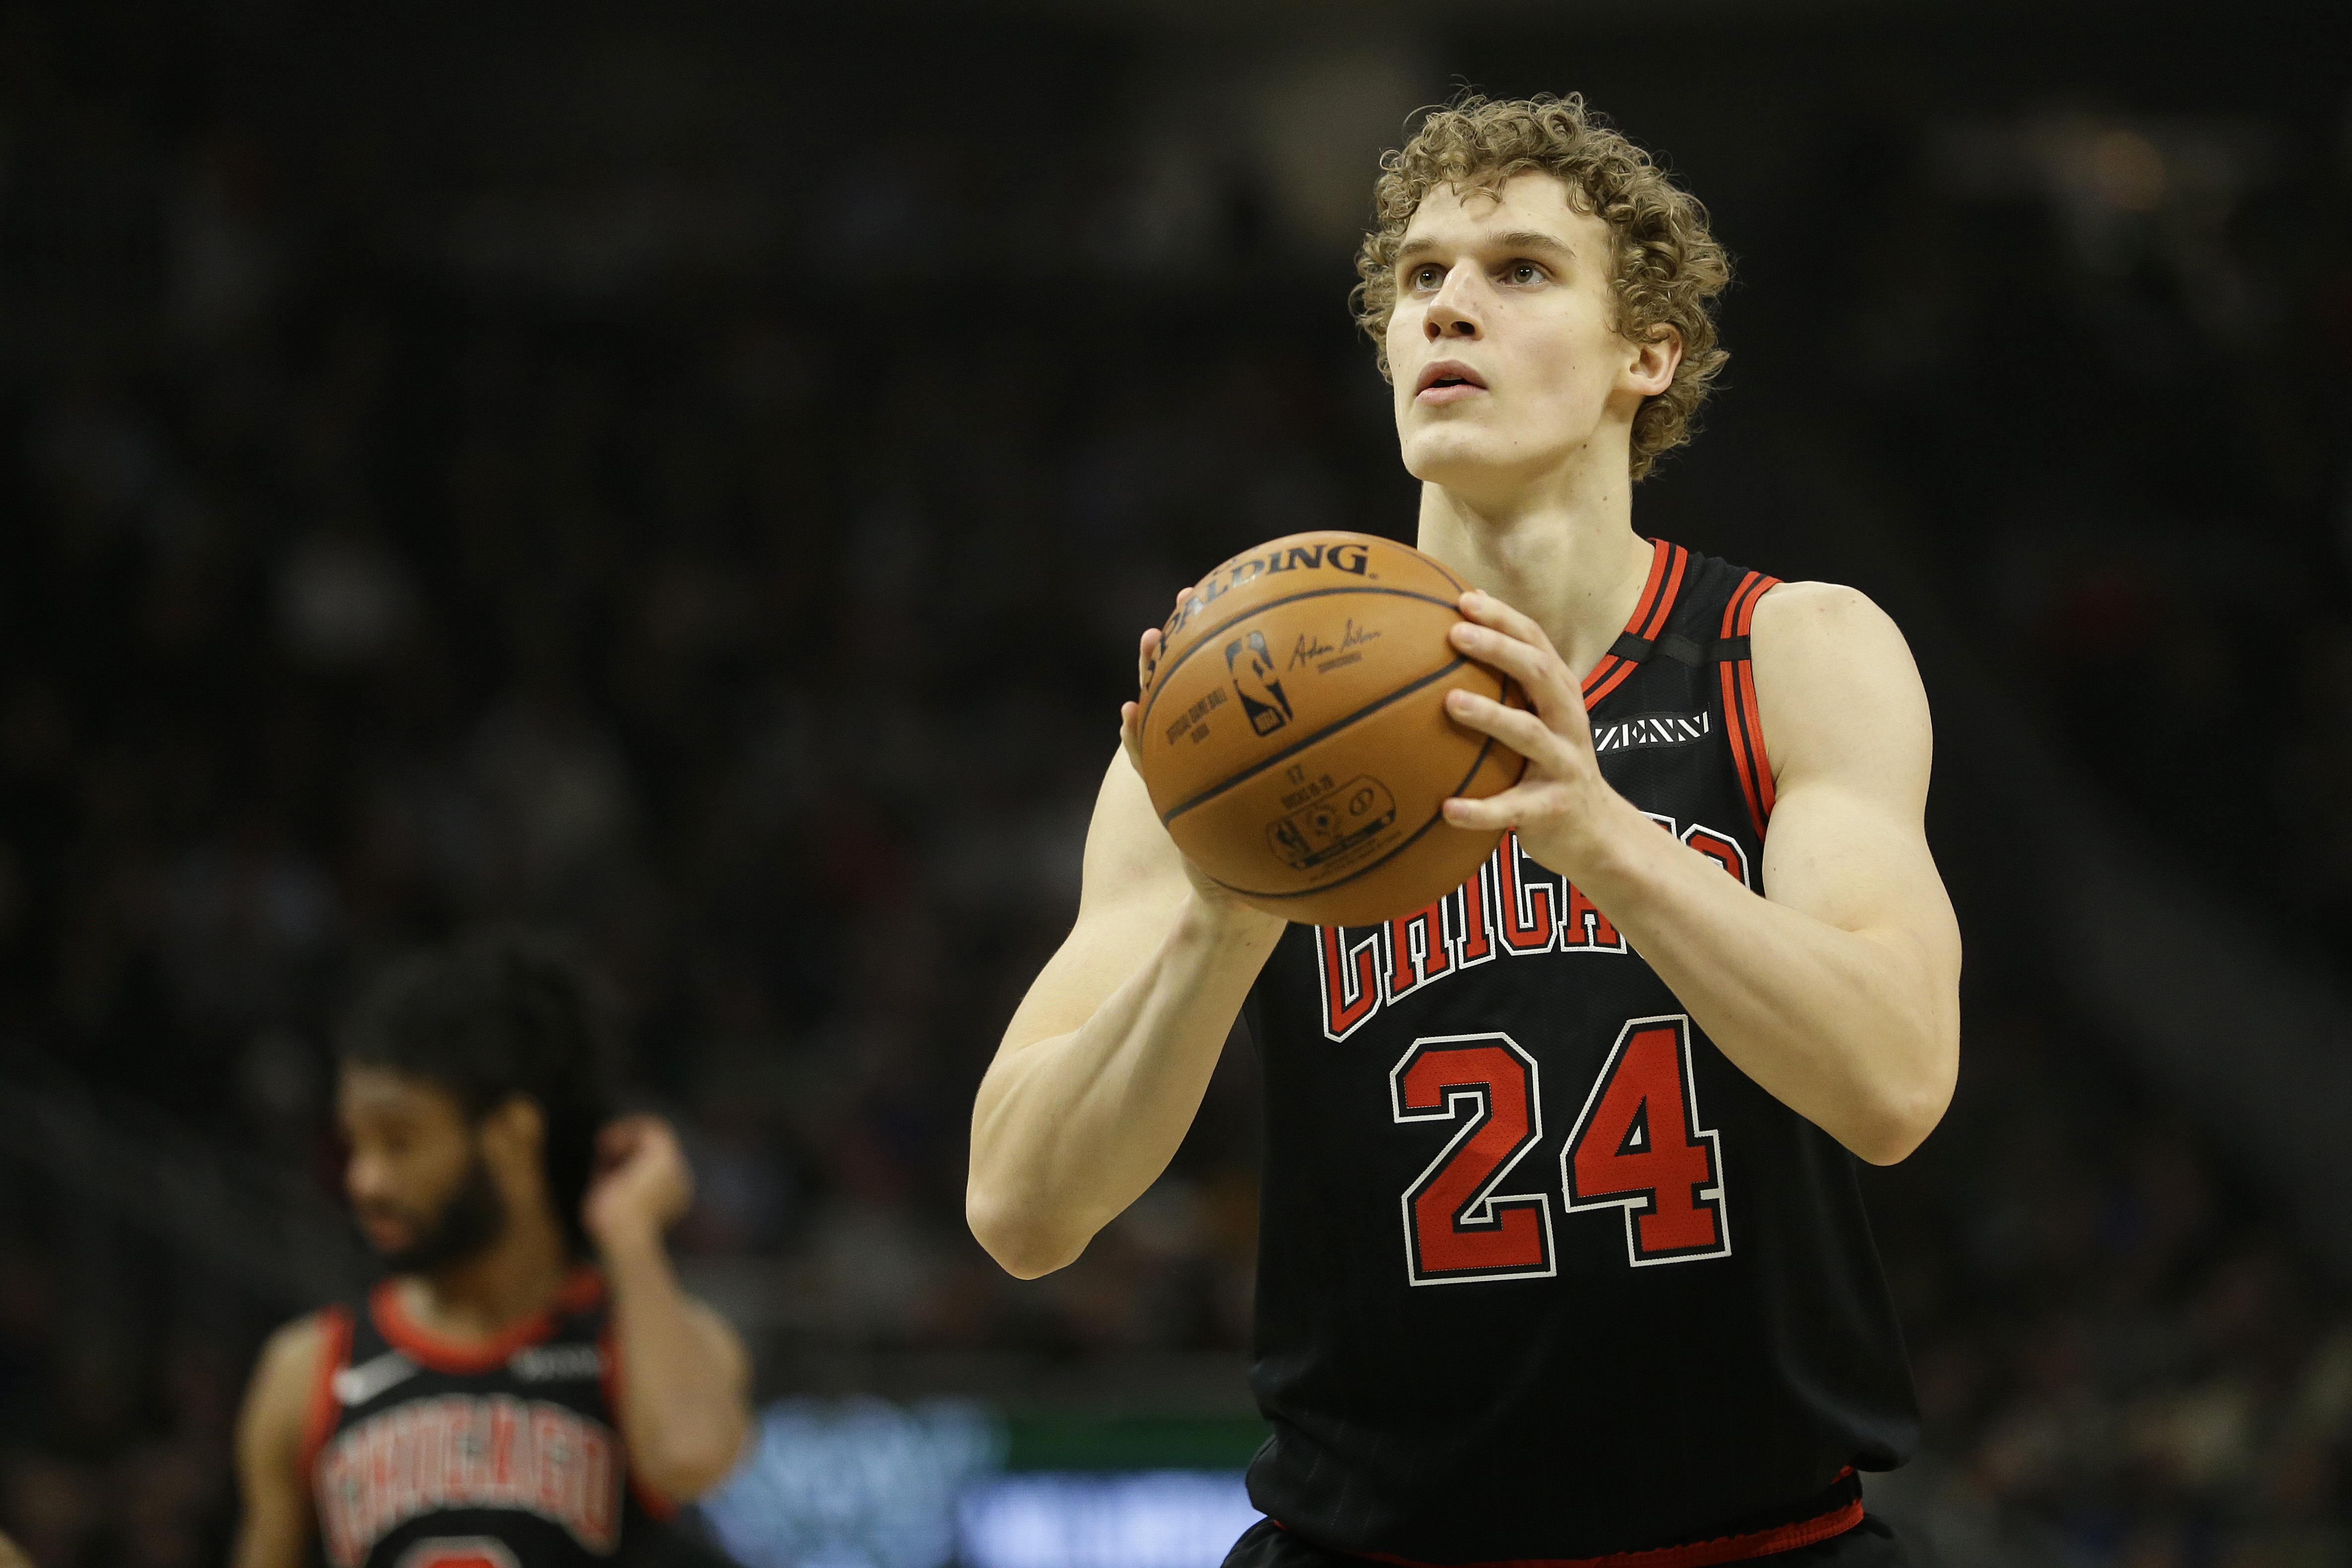 """""""There are days that we look really good and we play really good basketball, and sometimes we get stagnant,"""" the Bulls' Lauri Markkanen said. """"Just have to figure out what it is and make it consistent."""""""